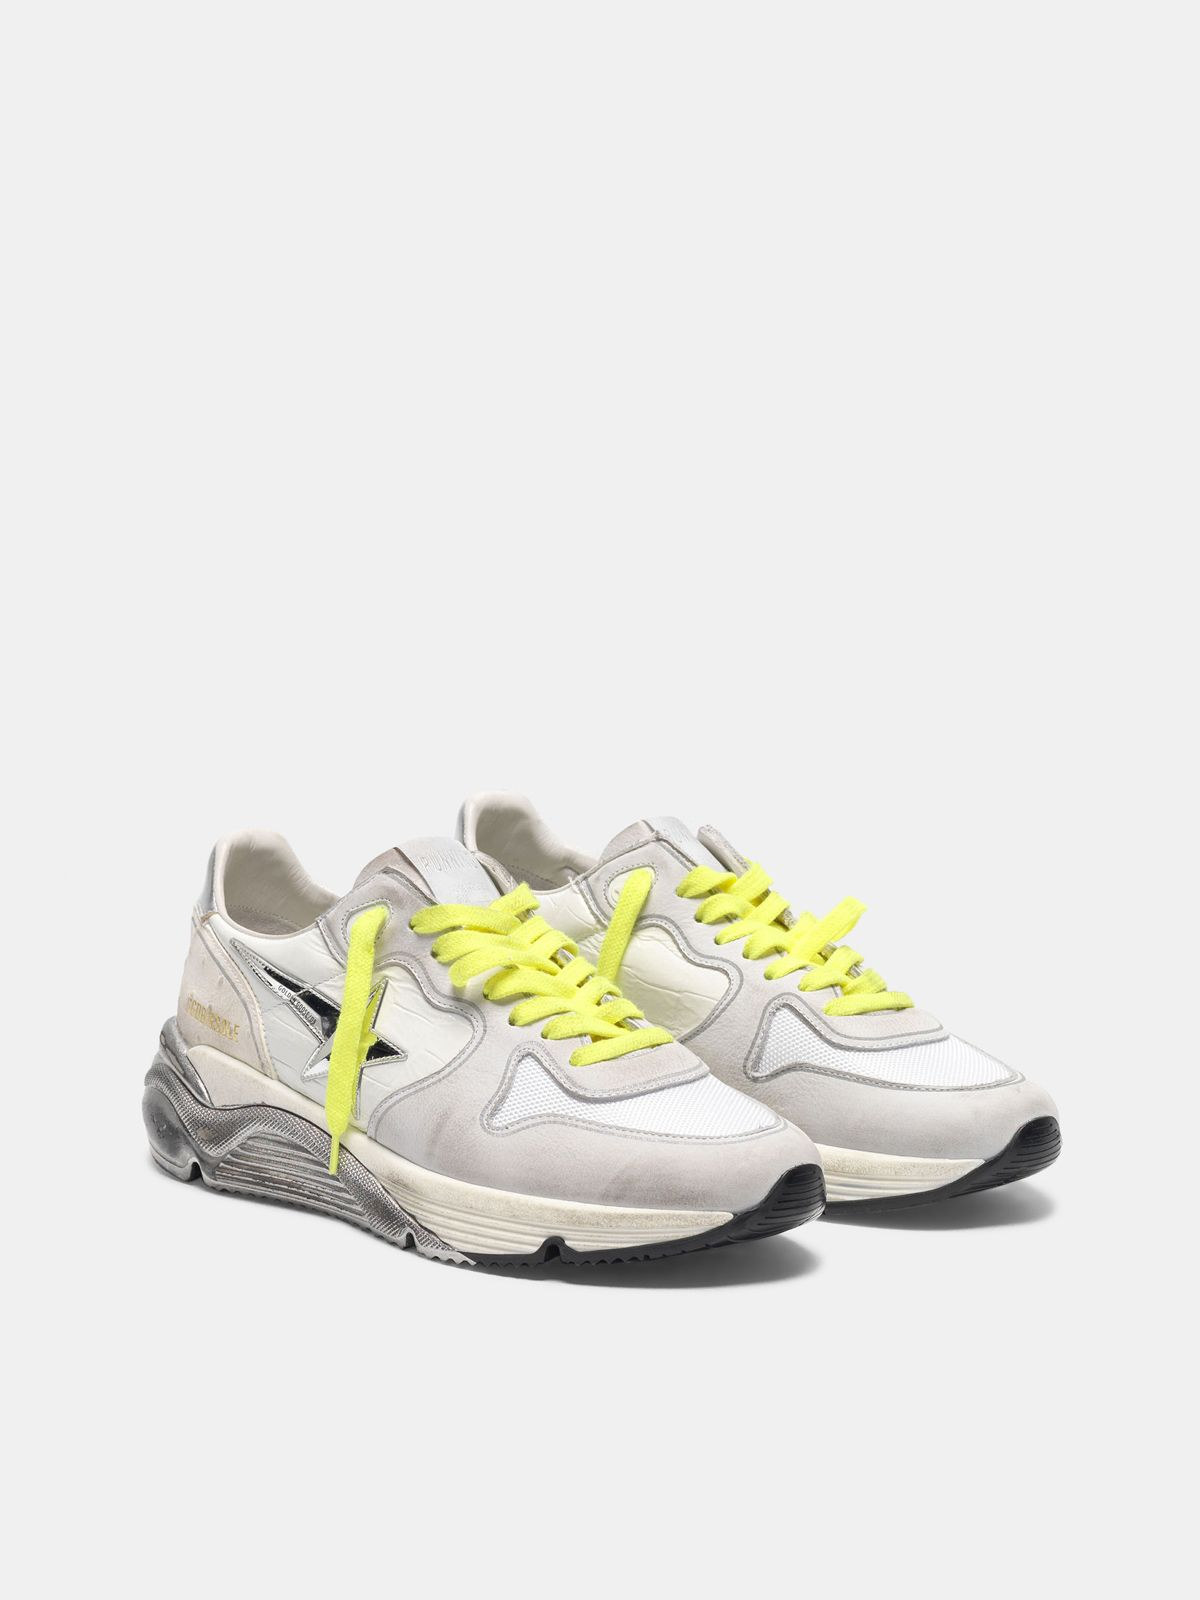 Golden Goose - Sneakers Running Sole bianche patchwork con stella argento in